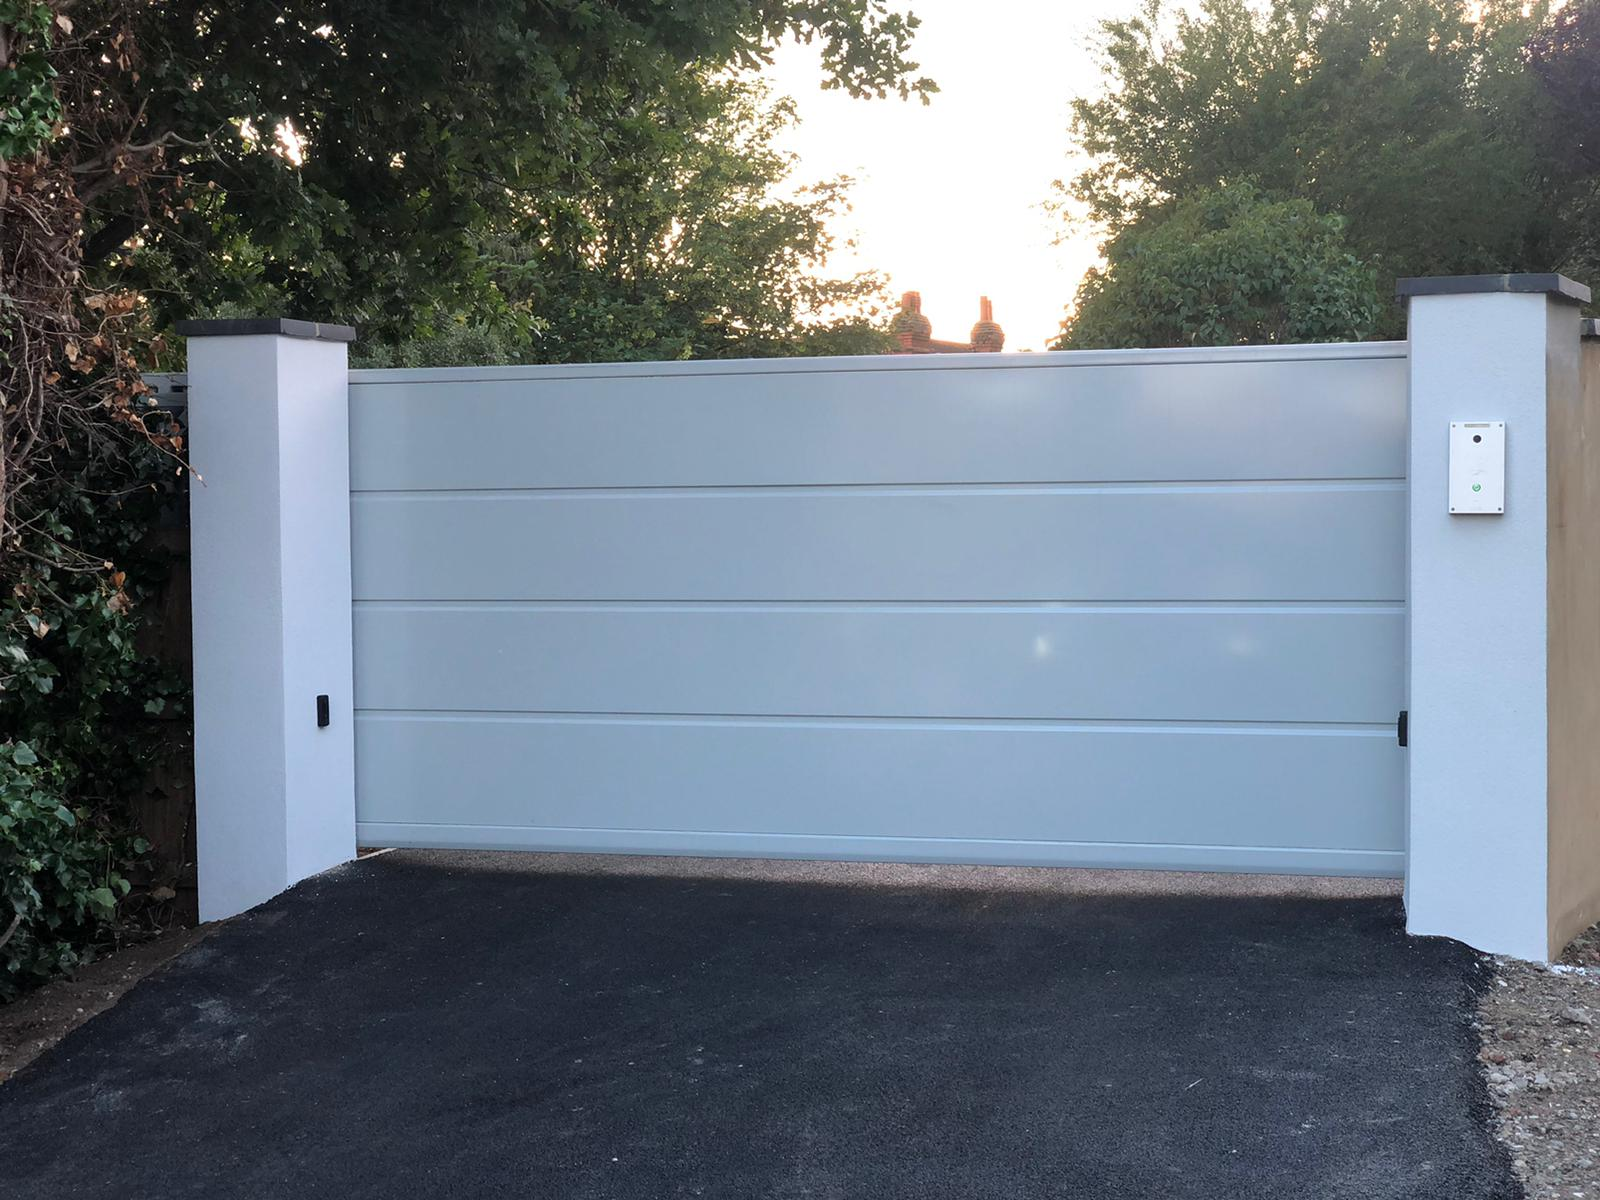 Automated security gates home driveway modern design welding fabrication Essex